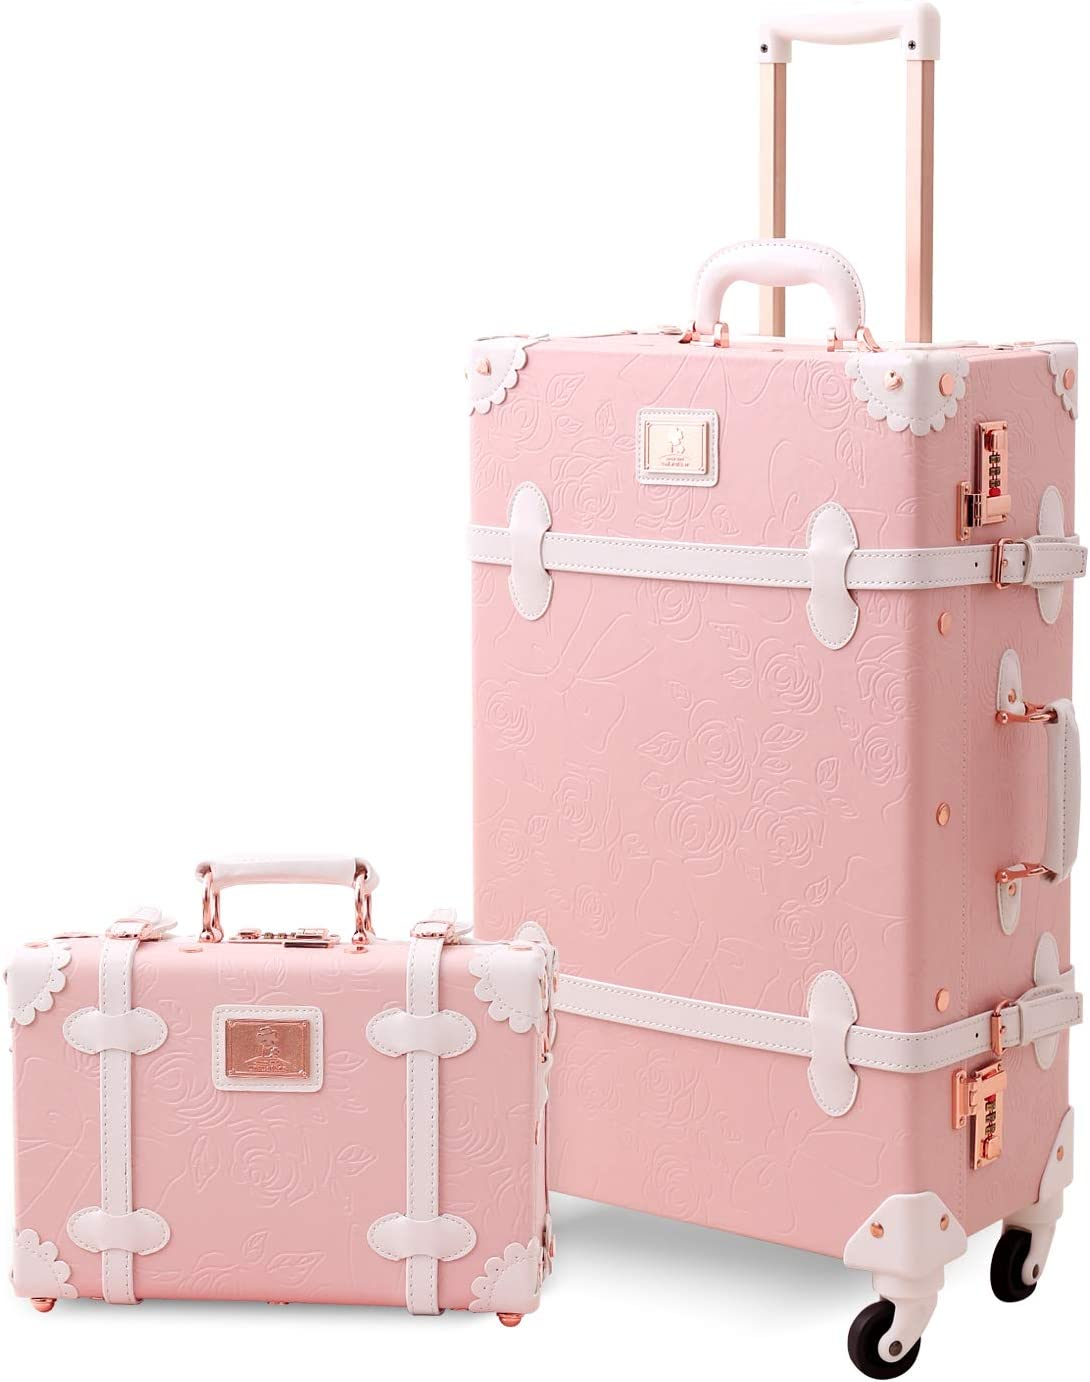 Unitravel 2 Piece Retro Suitcase Sets 20 inch PU Leather Carry on Spinner Luggage with 12 inch Vintage Train Bag for Women Embossed Pink